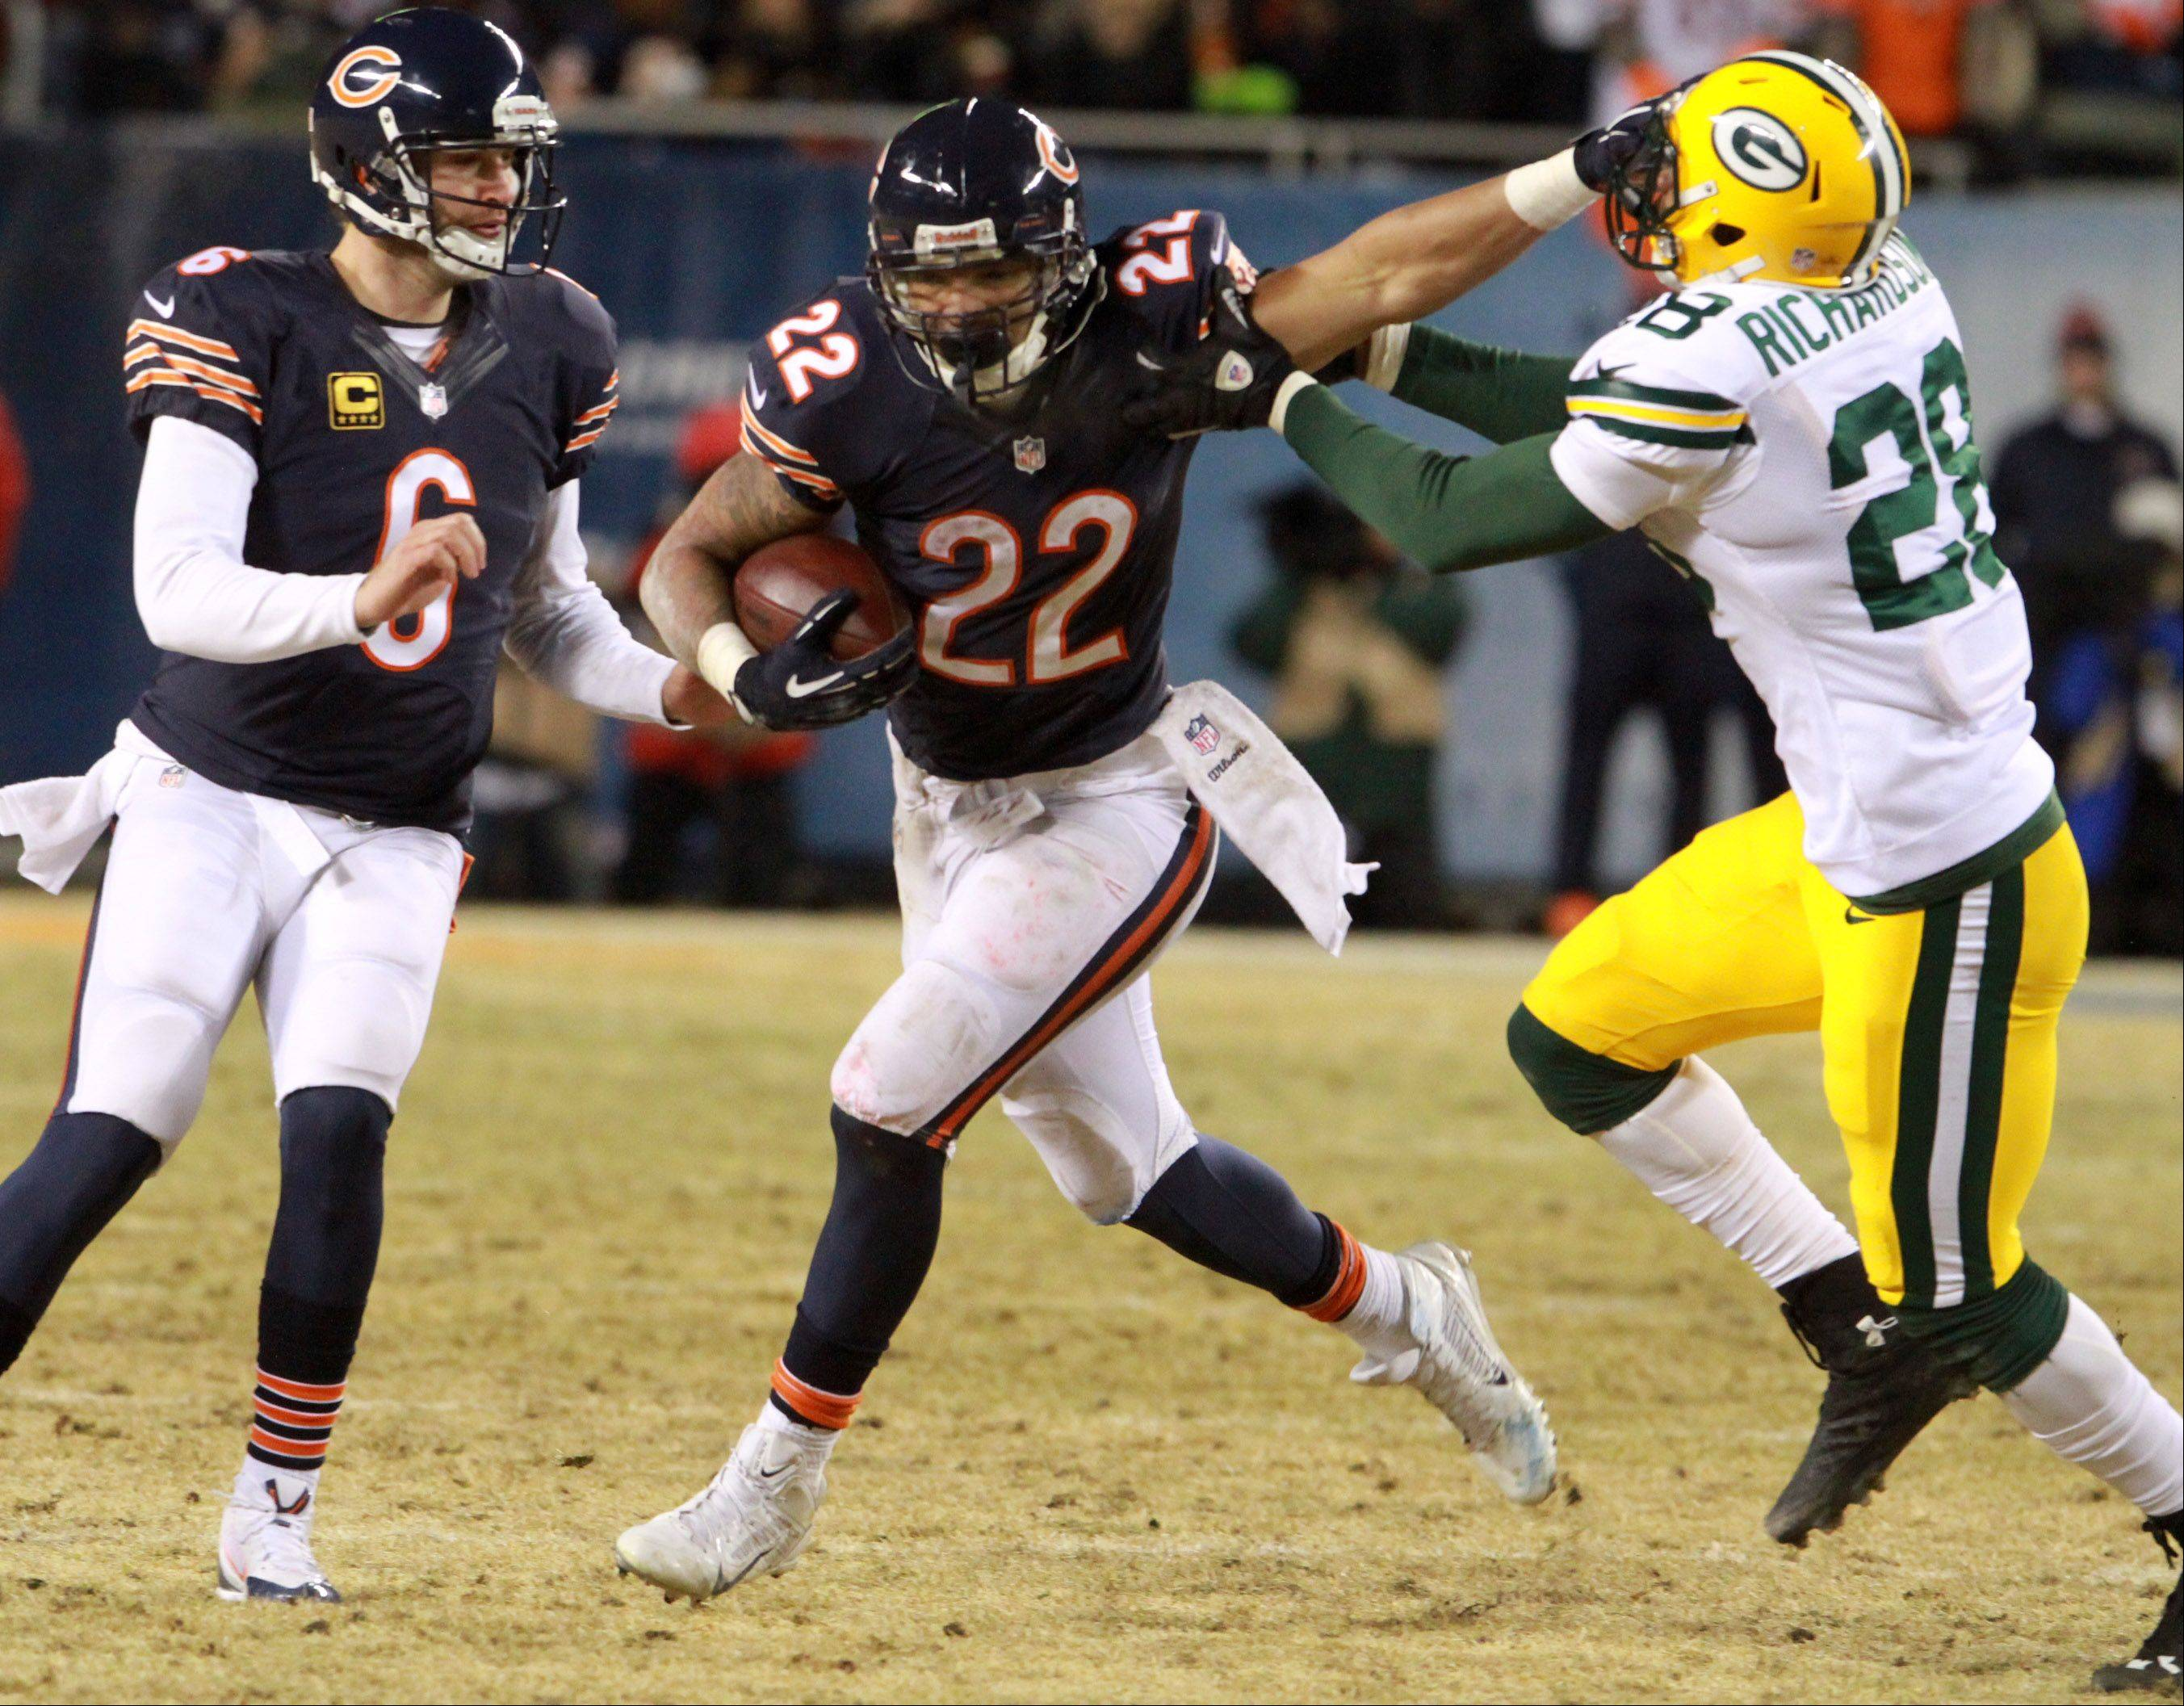 Chicago Bears running back Matt Forte escapes from Green Bay Packers safety Sean Richardson on Sunday at Soldier Field in Chicago.